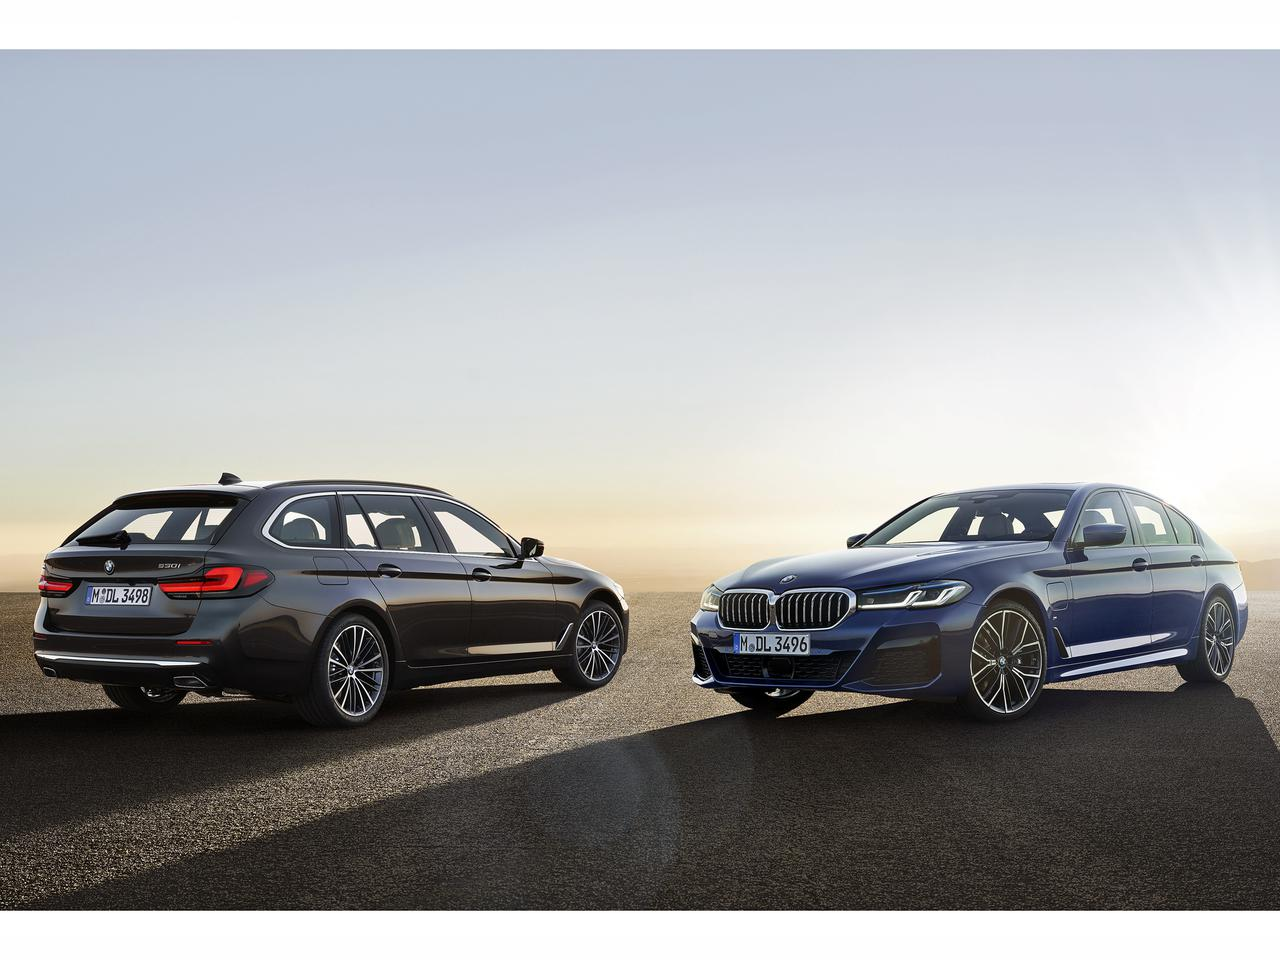 Images : 1番目の画像 - BMW 5シリーズ - LAWRENCE - Motorcycle x Cars + α = Your Life.